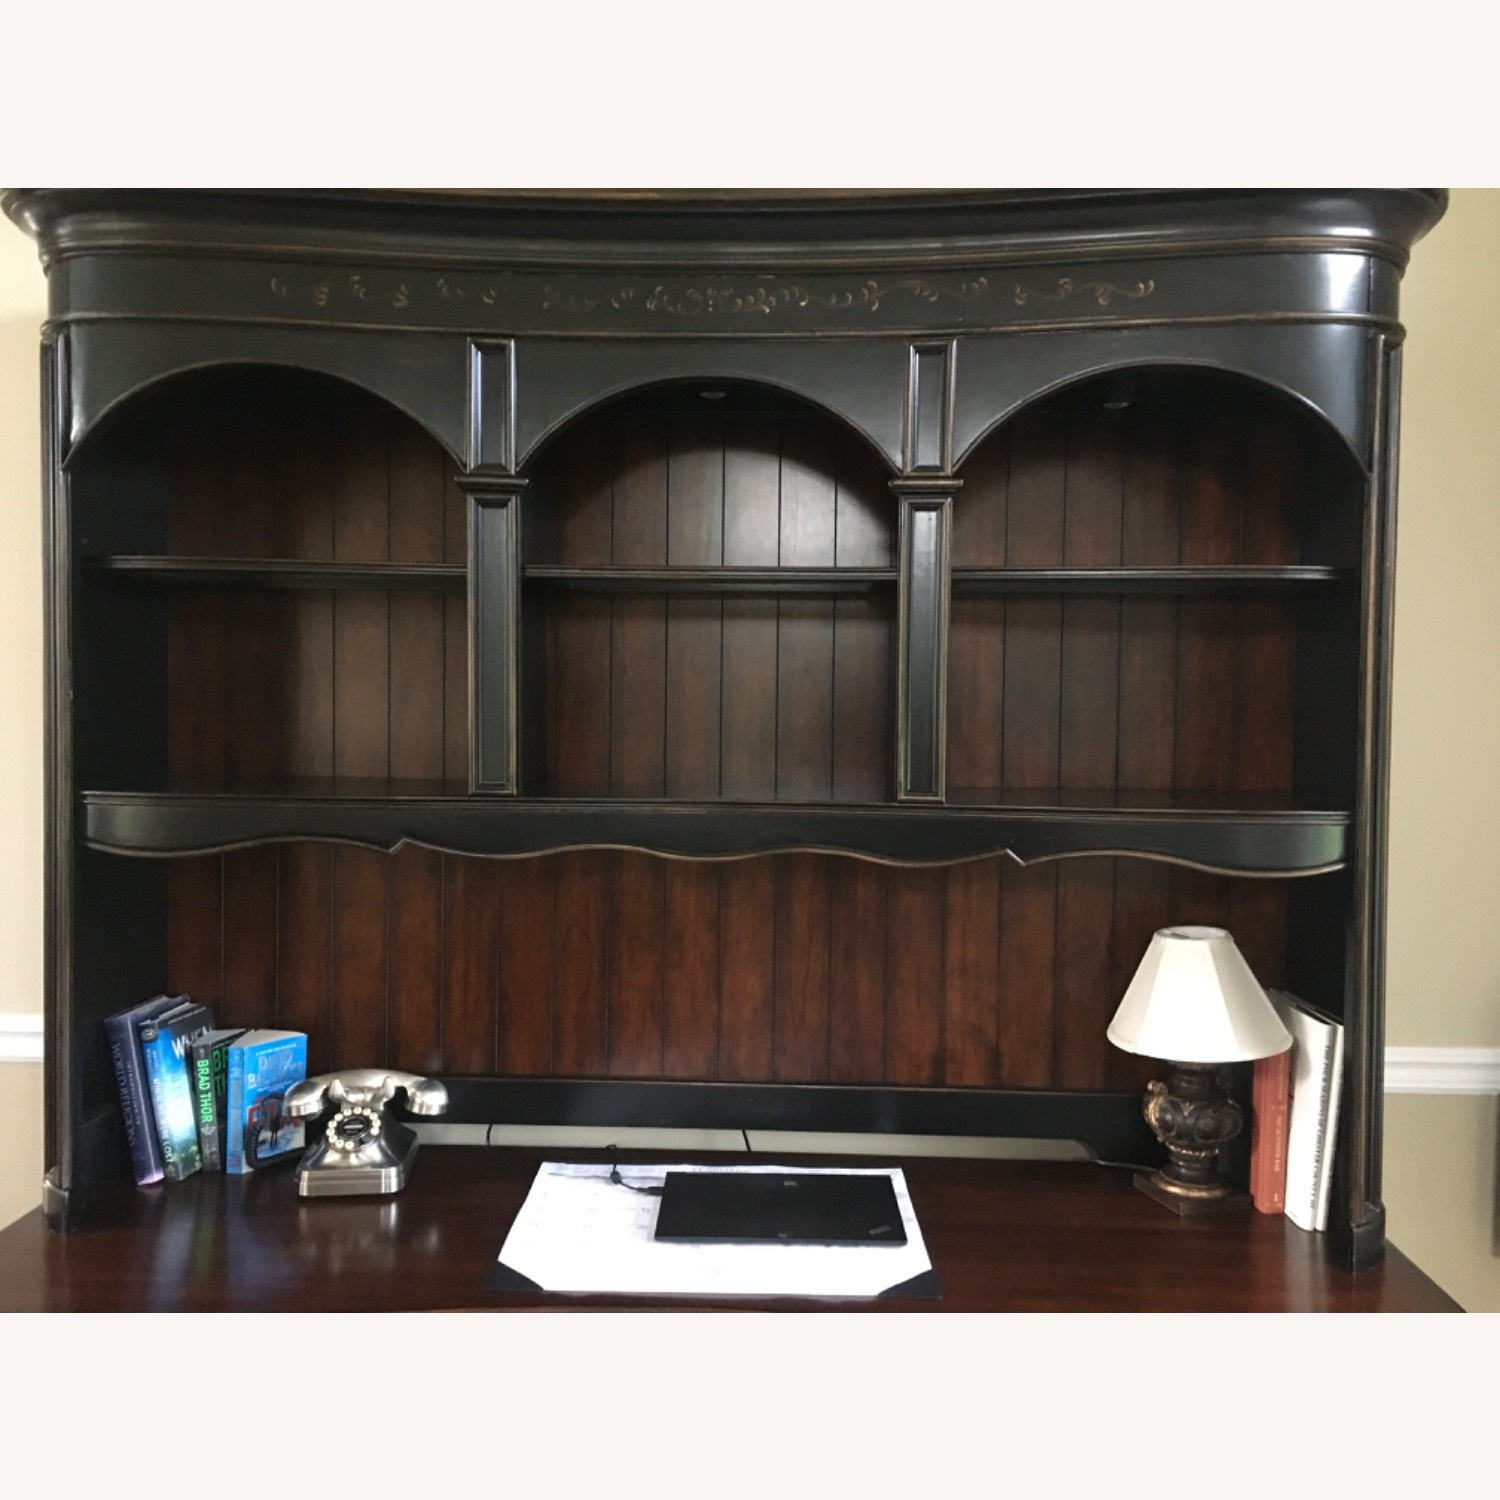 Hooker Furniture Corporation Wall Unit - image-1